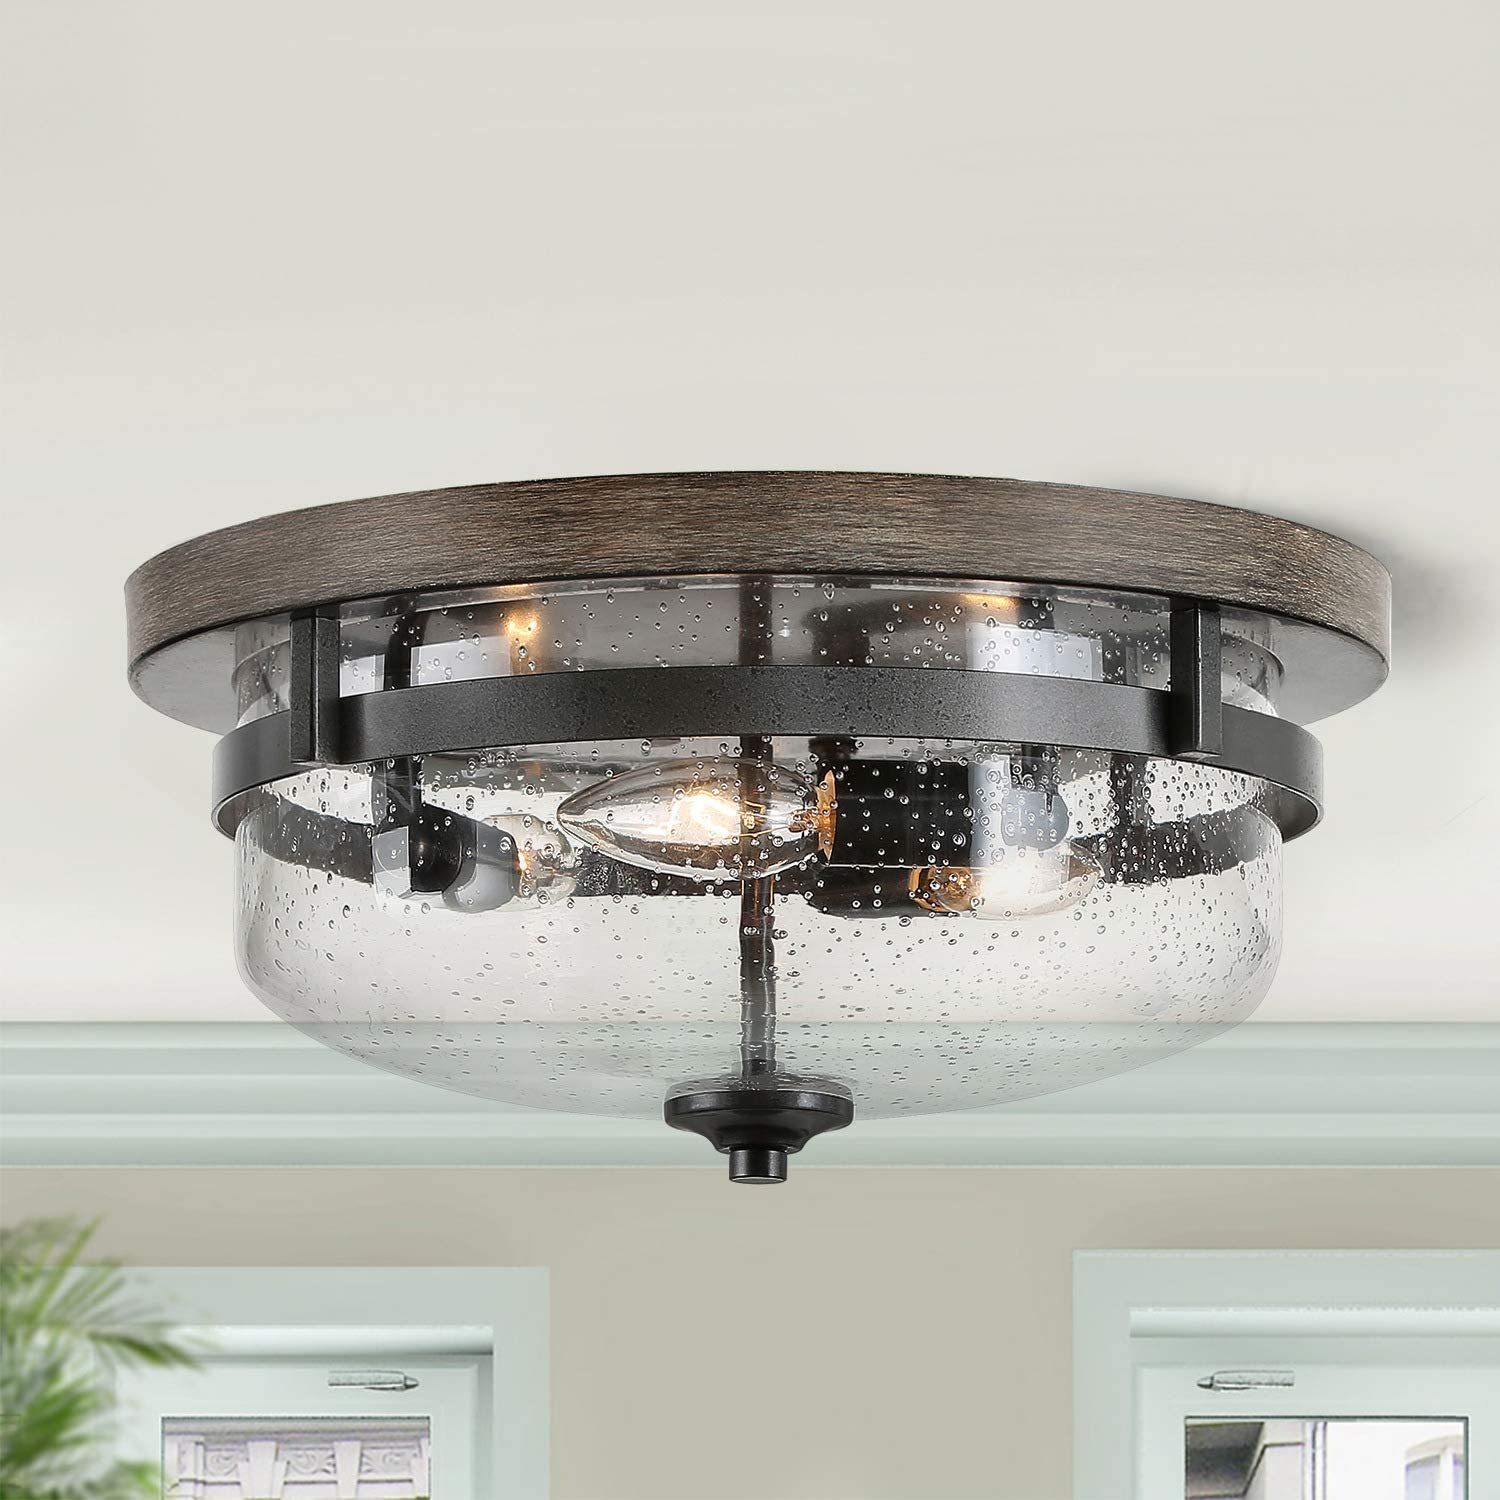 "Flush Mount Ceiling Light, Farmhouse Light Fixtures Ceiling with Faux Wood Finish and Seeded Glass Cover, W13.5""x H6.5"""